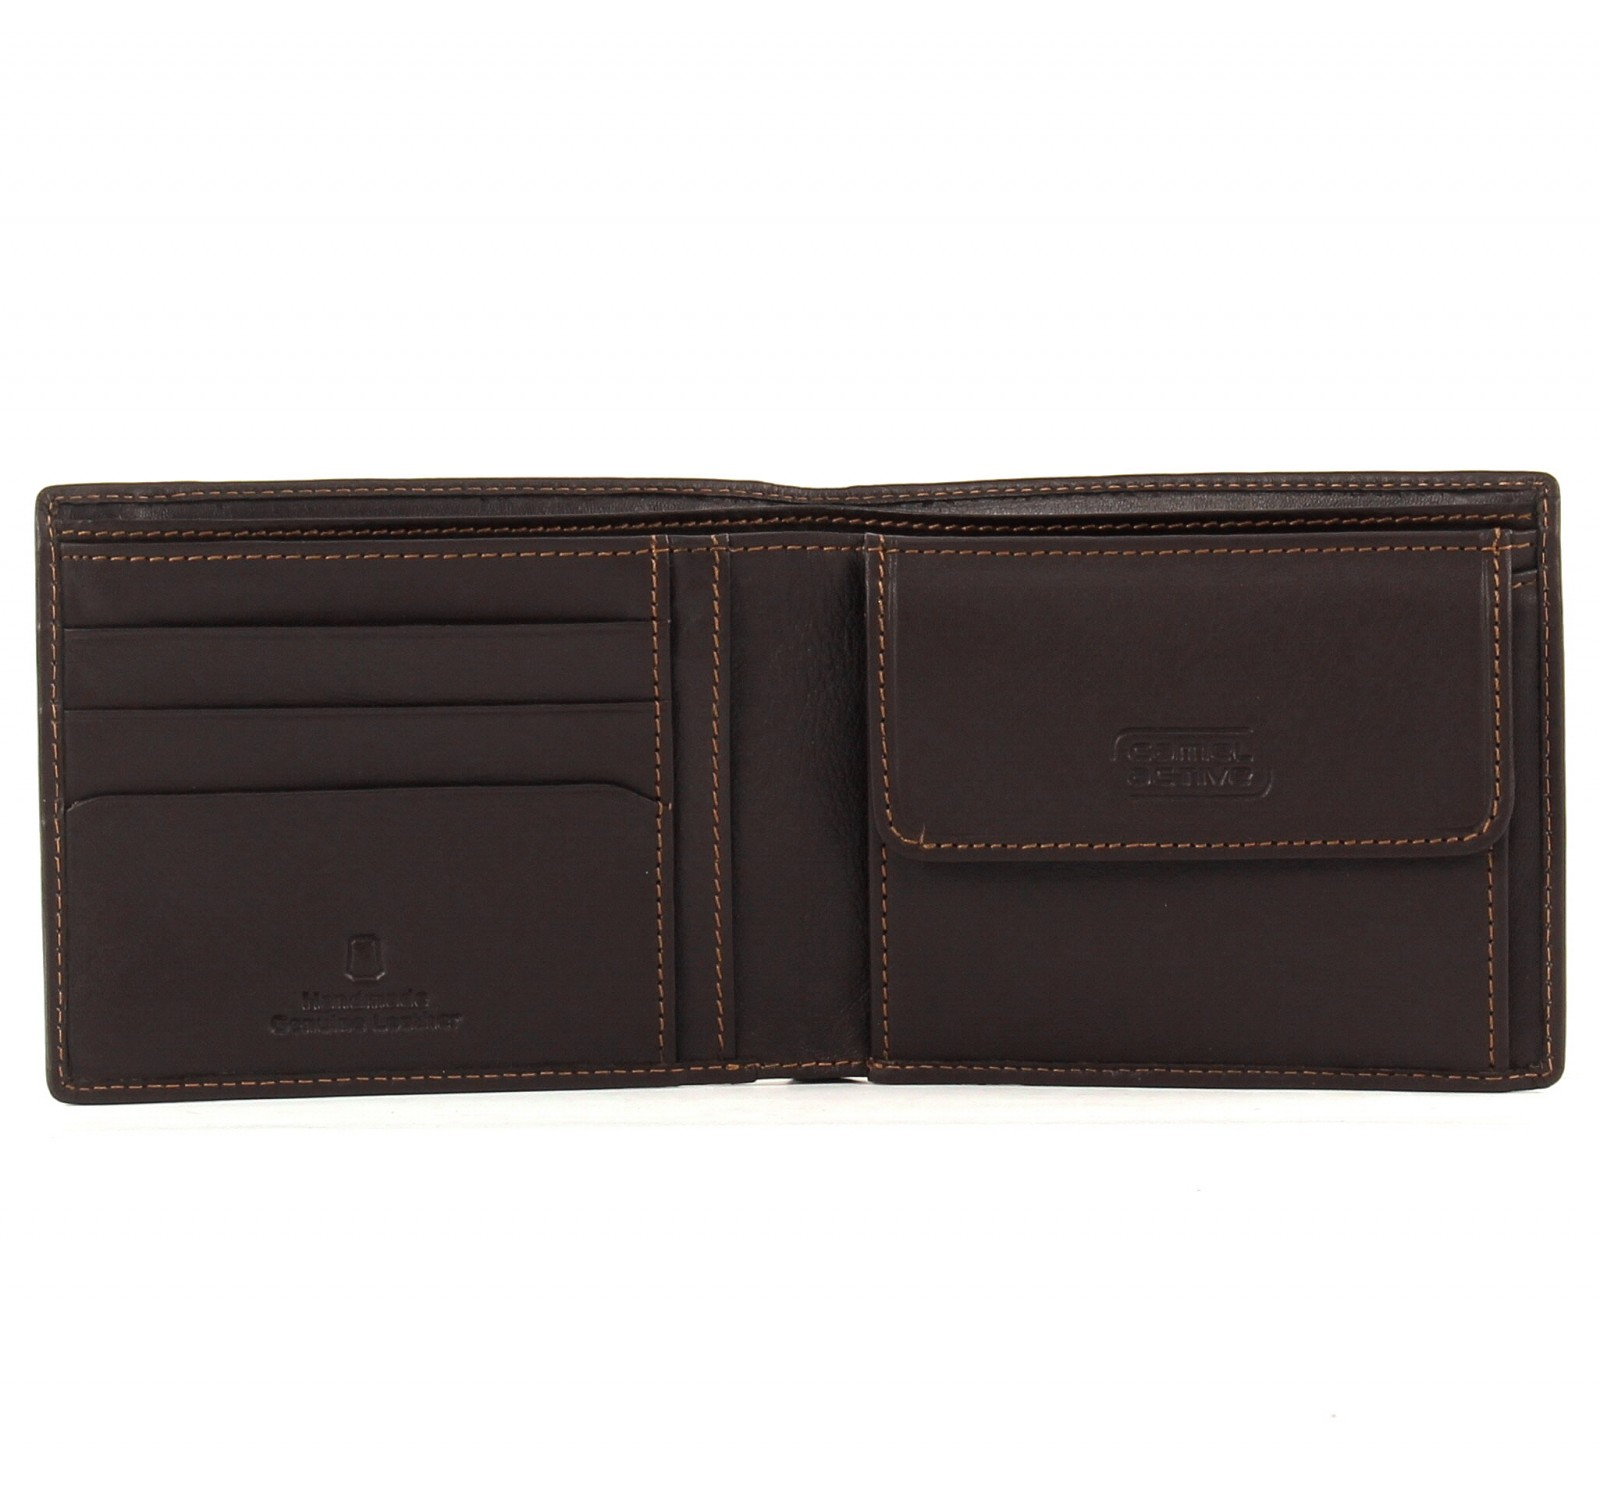 ea85843d4c ... To CloseCamel Active Vegas Wallet Brown / 37,43 €*Tap To CloseOnly  possible if you pay by Paypal, Amazon Payments, Credit Card, Cash on  Delivery, ...